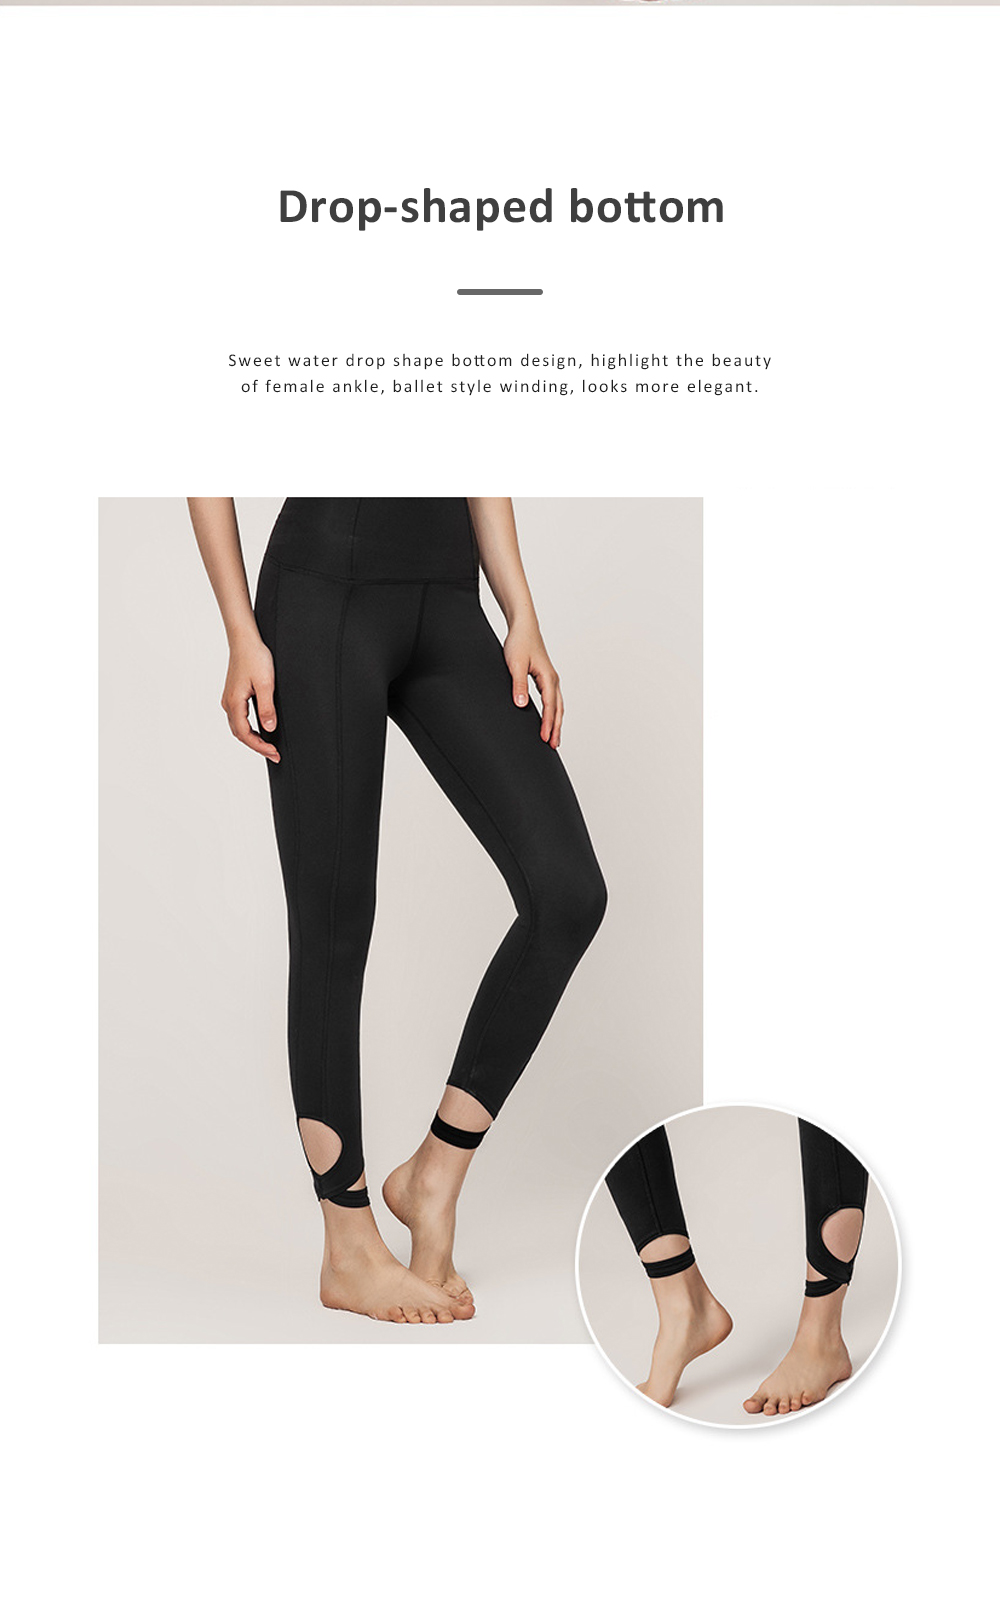 Women's Ultra Soft Yoga Suit With Strap-on Bra and High Waist Tummy Control Workout Leggings 3